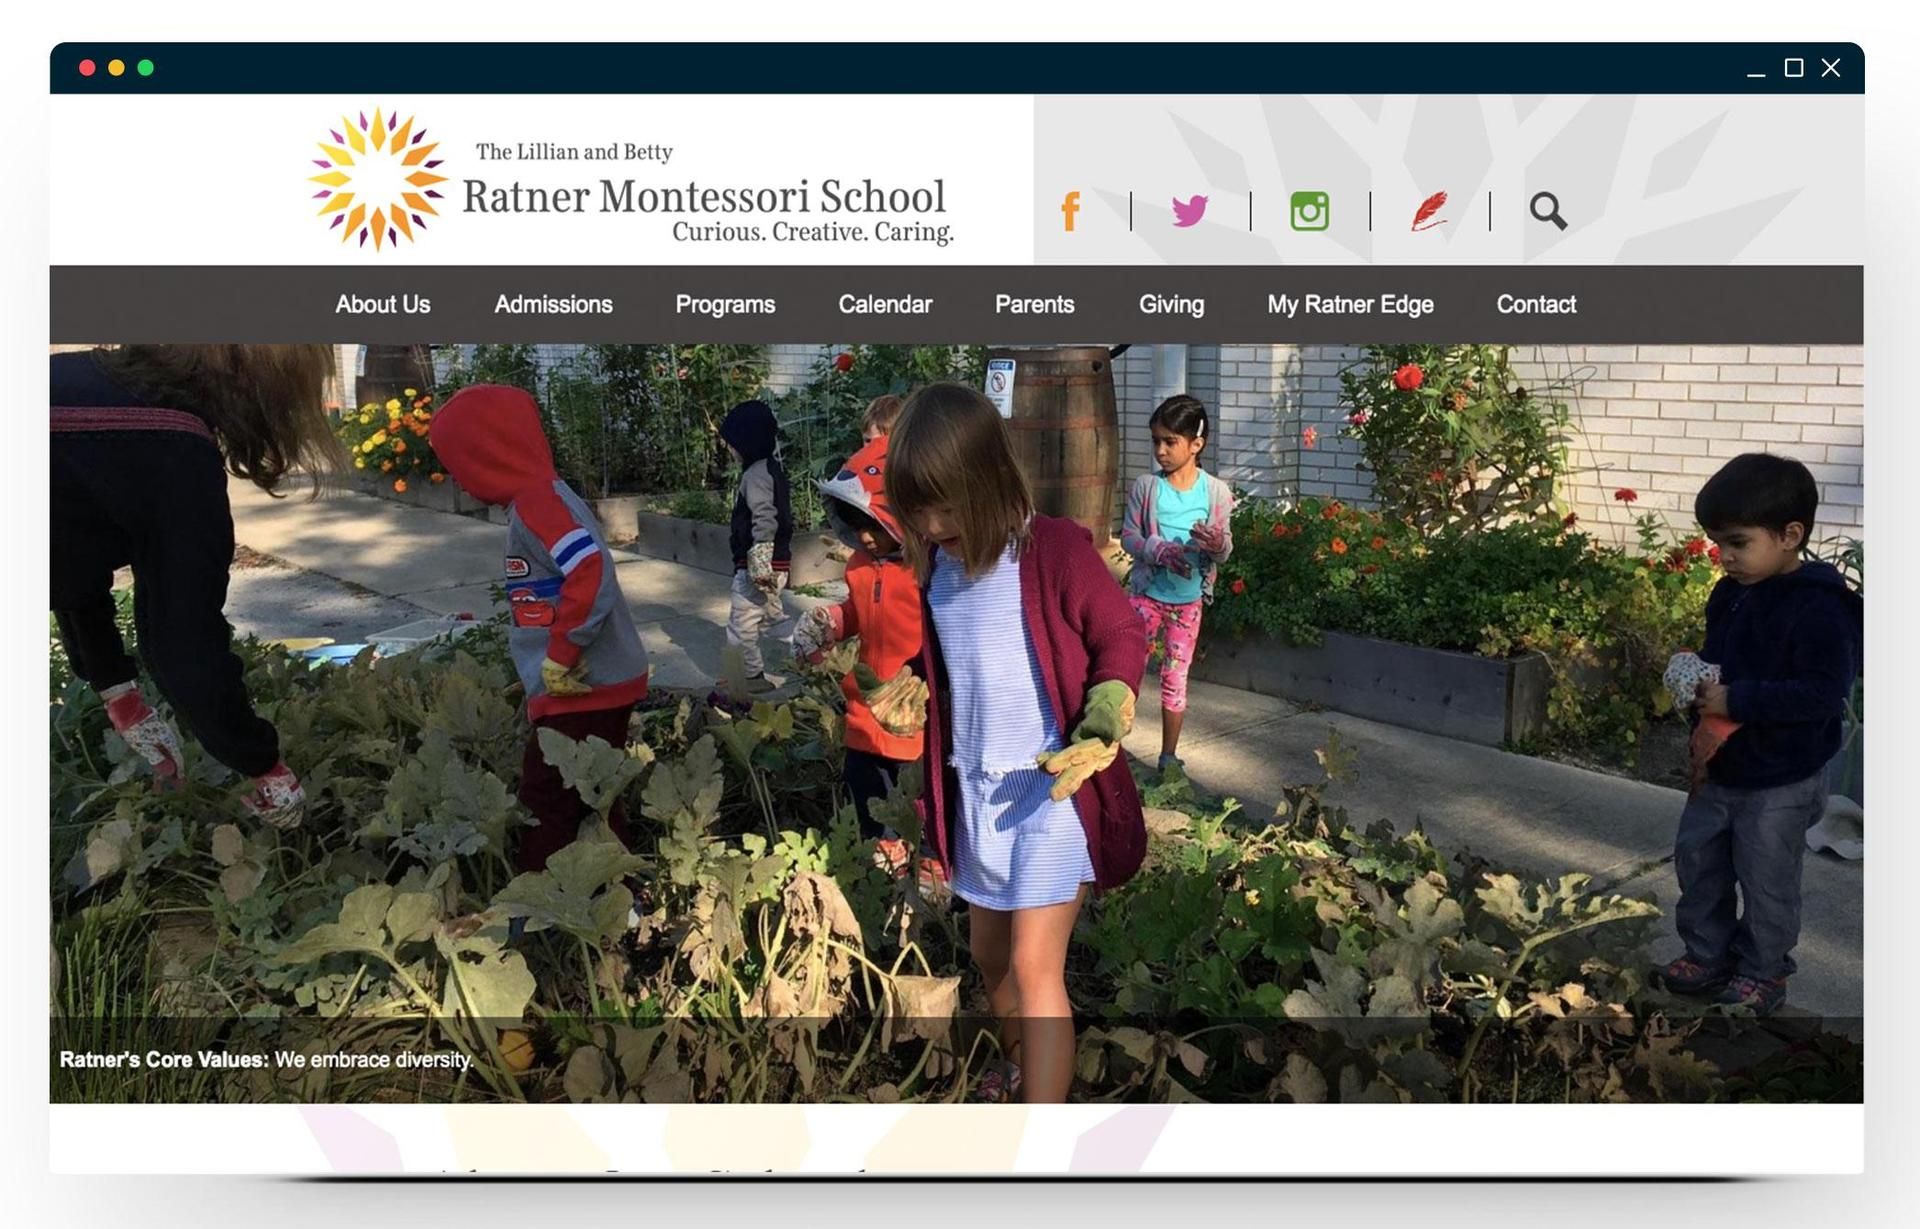 Ratner Montessori in Ohio